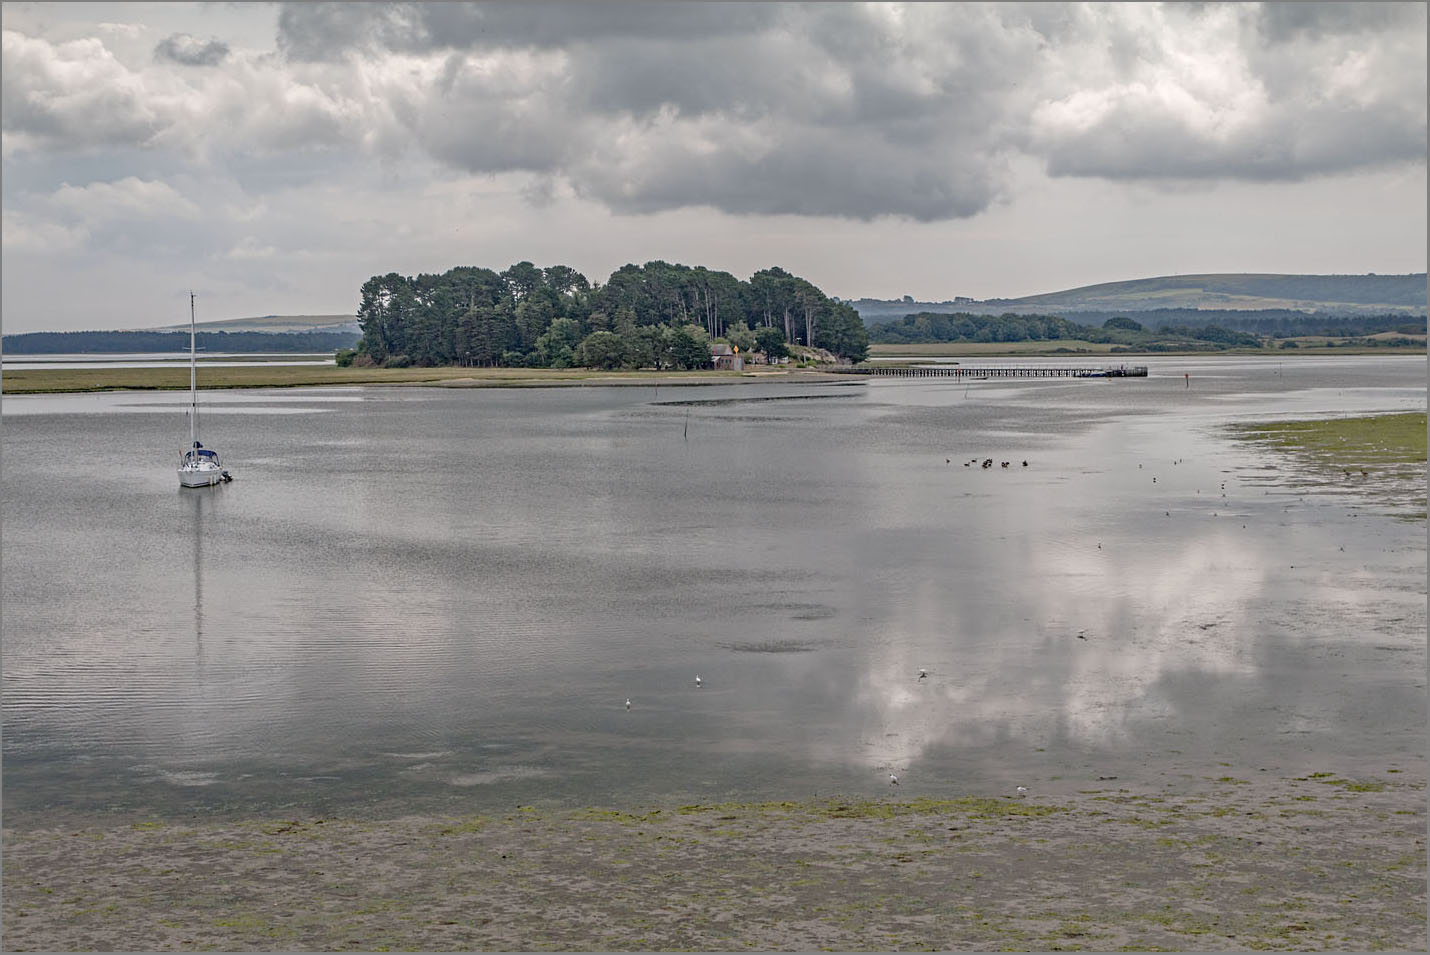 Round island Poole Harbour from Arne | Purbeck Heath: resilience in the landscape